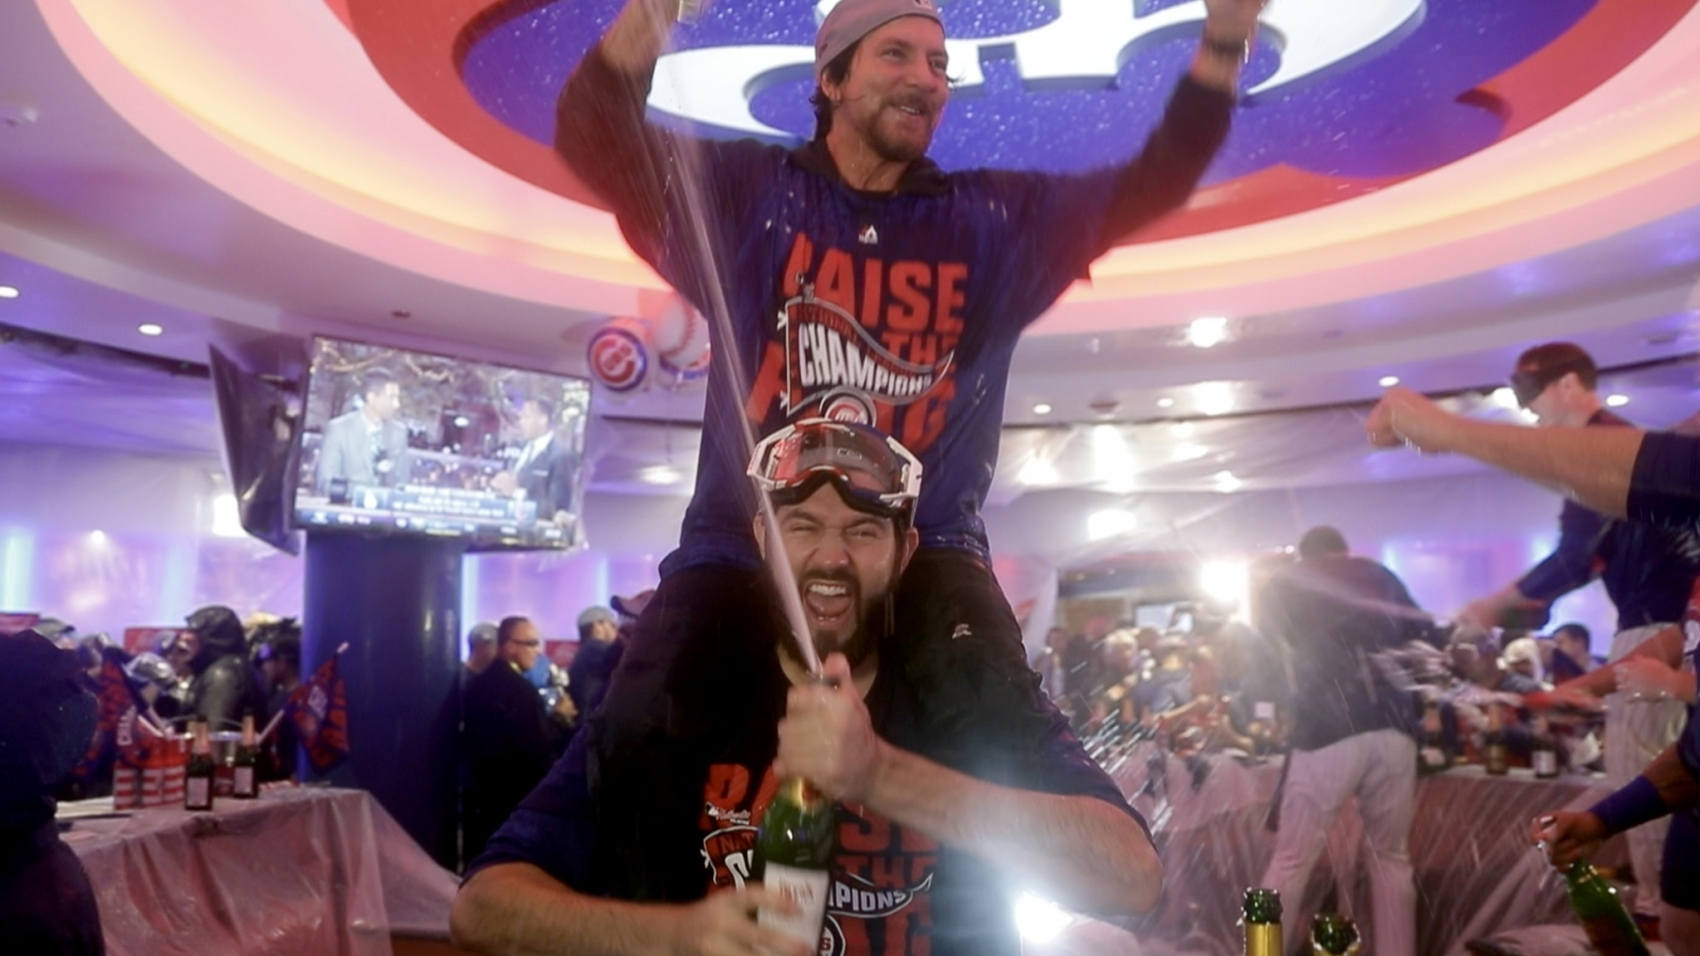 ct-pearl-jams-eddie-vedder-celebrates-cubs-video-20161023